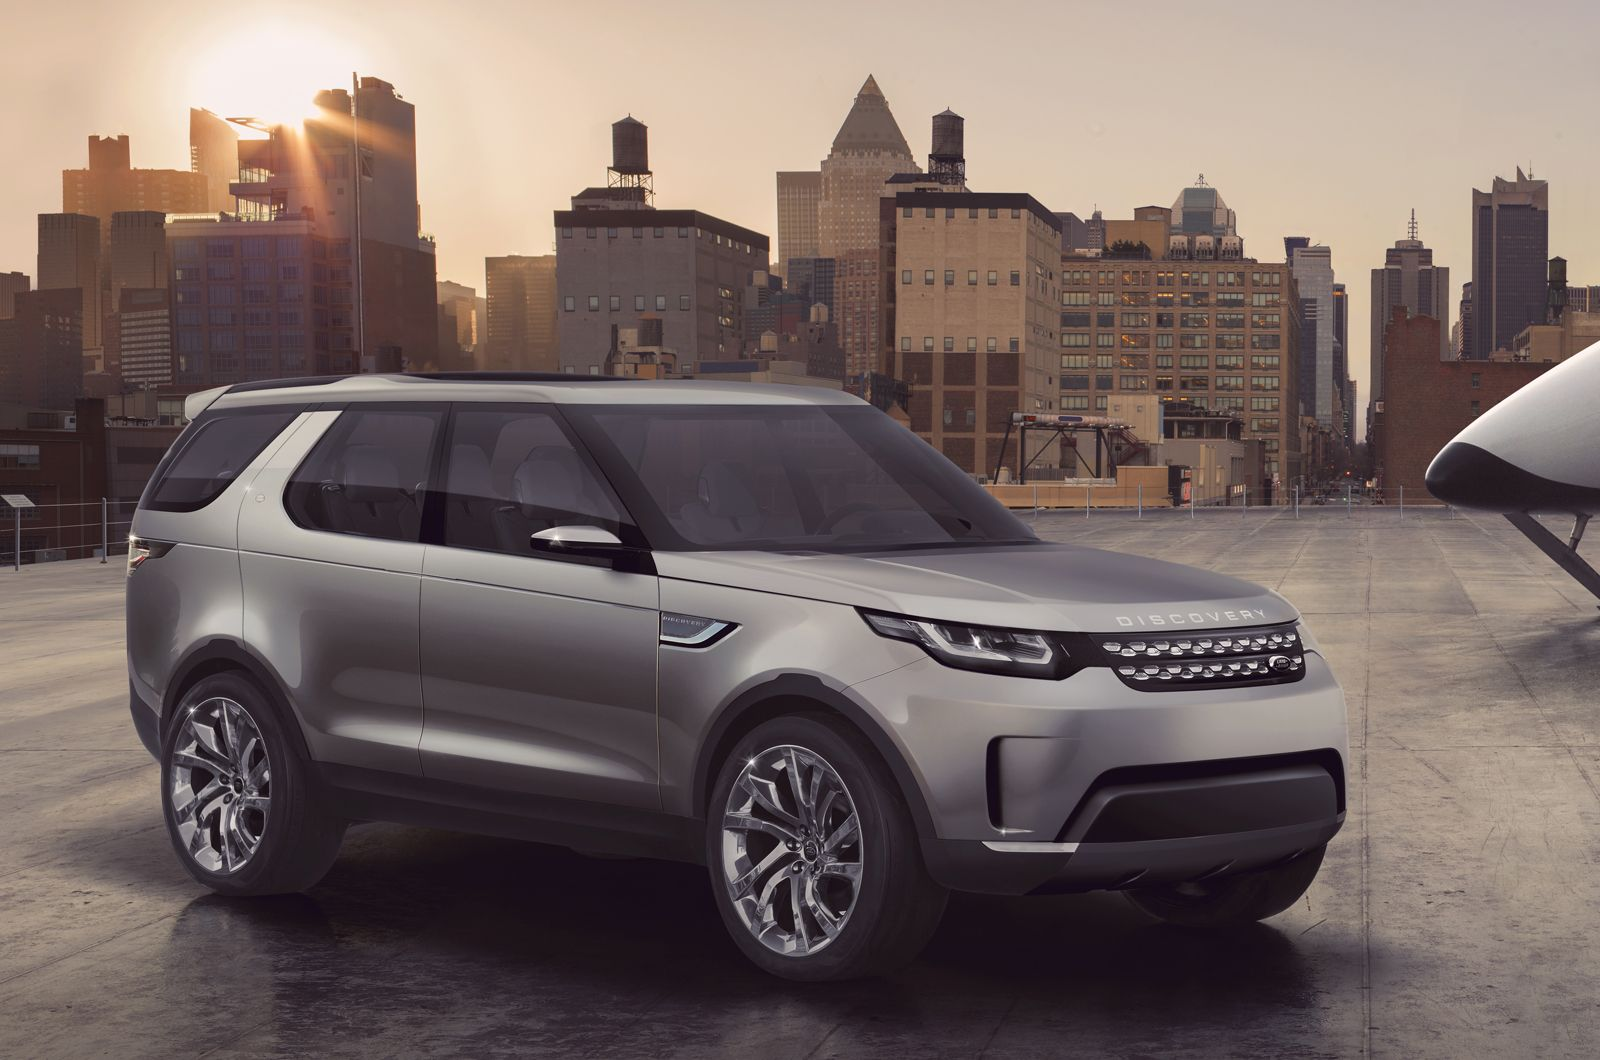 New Land Rover Discovery shown at Beijing motor show